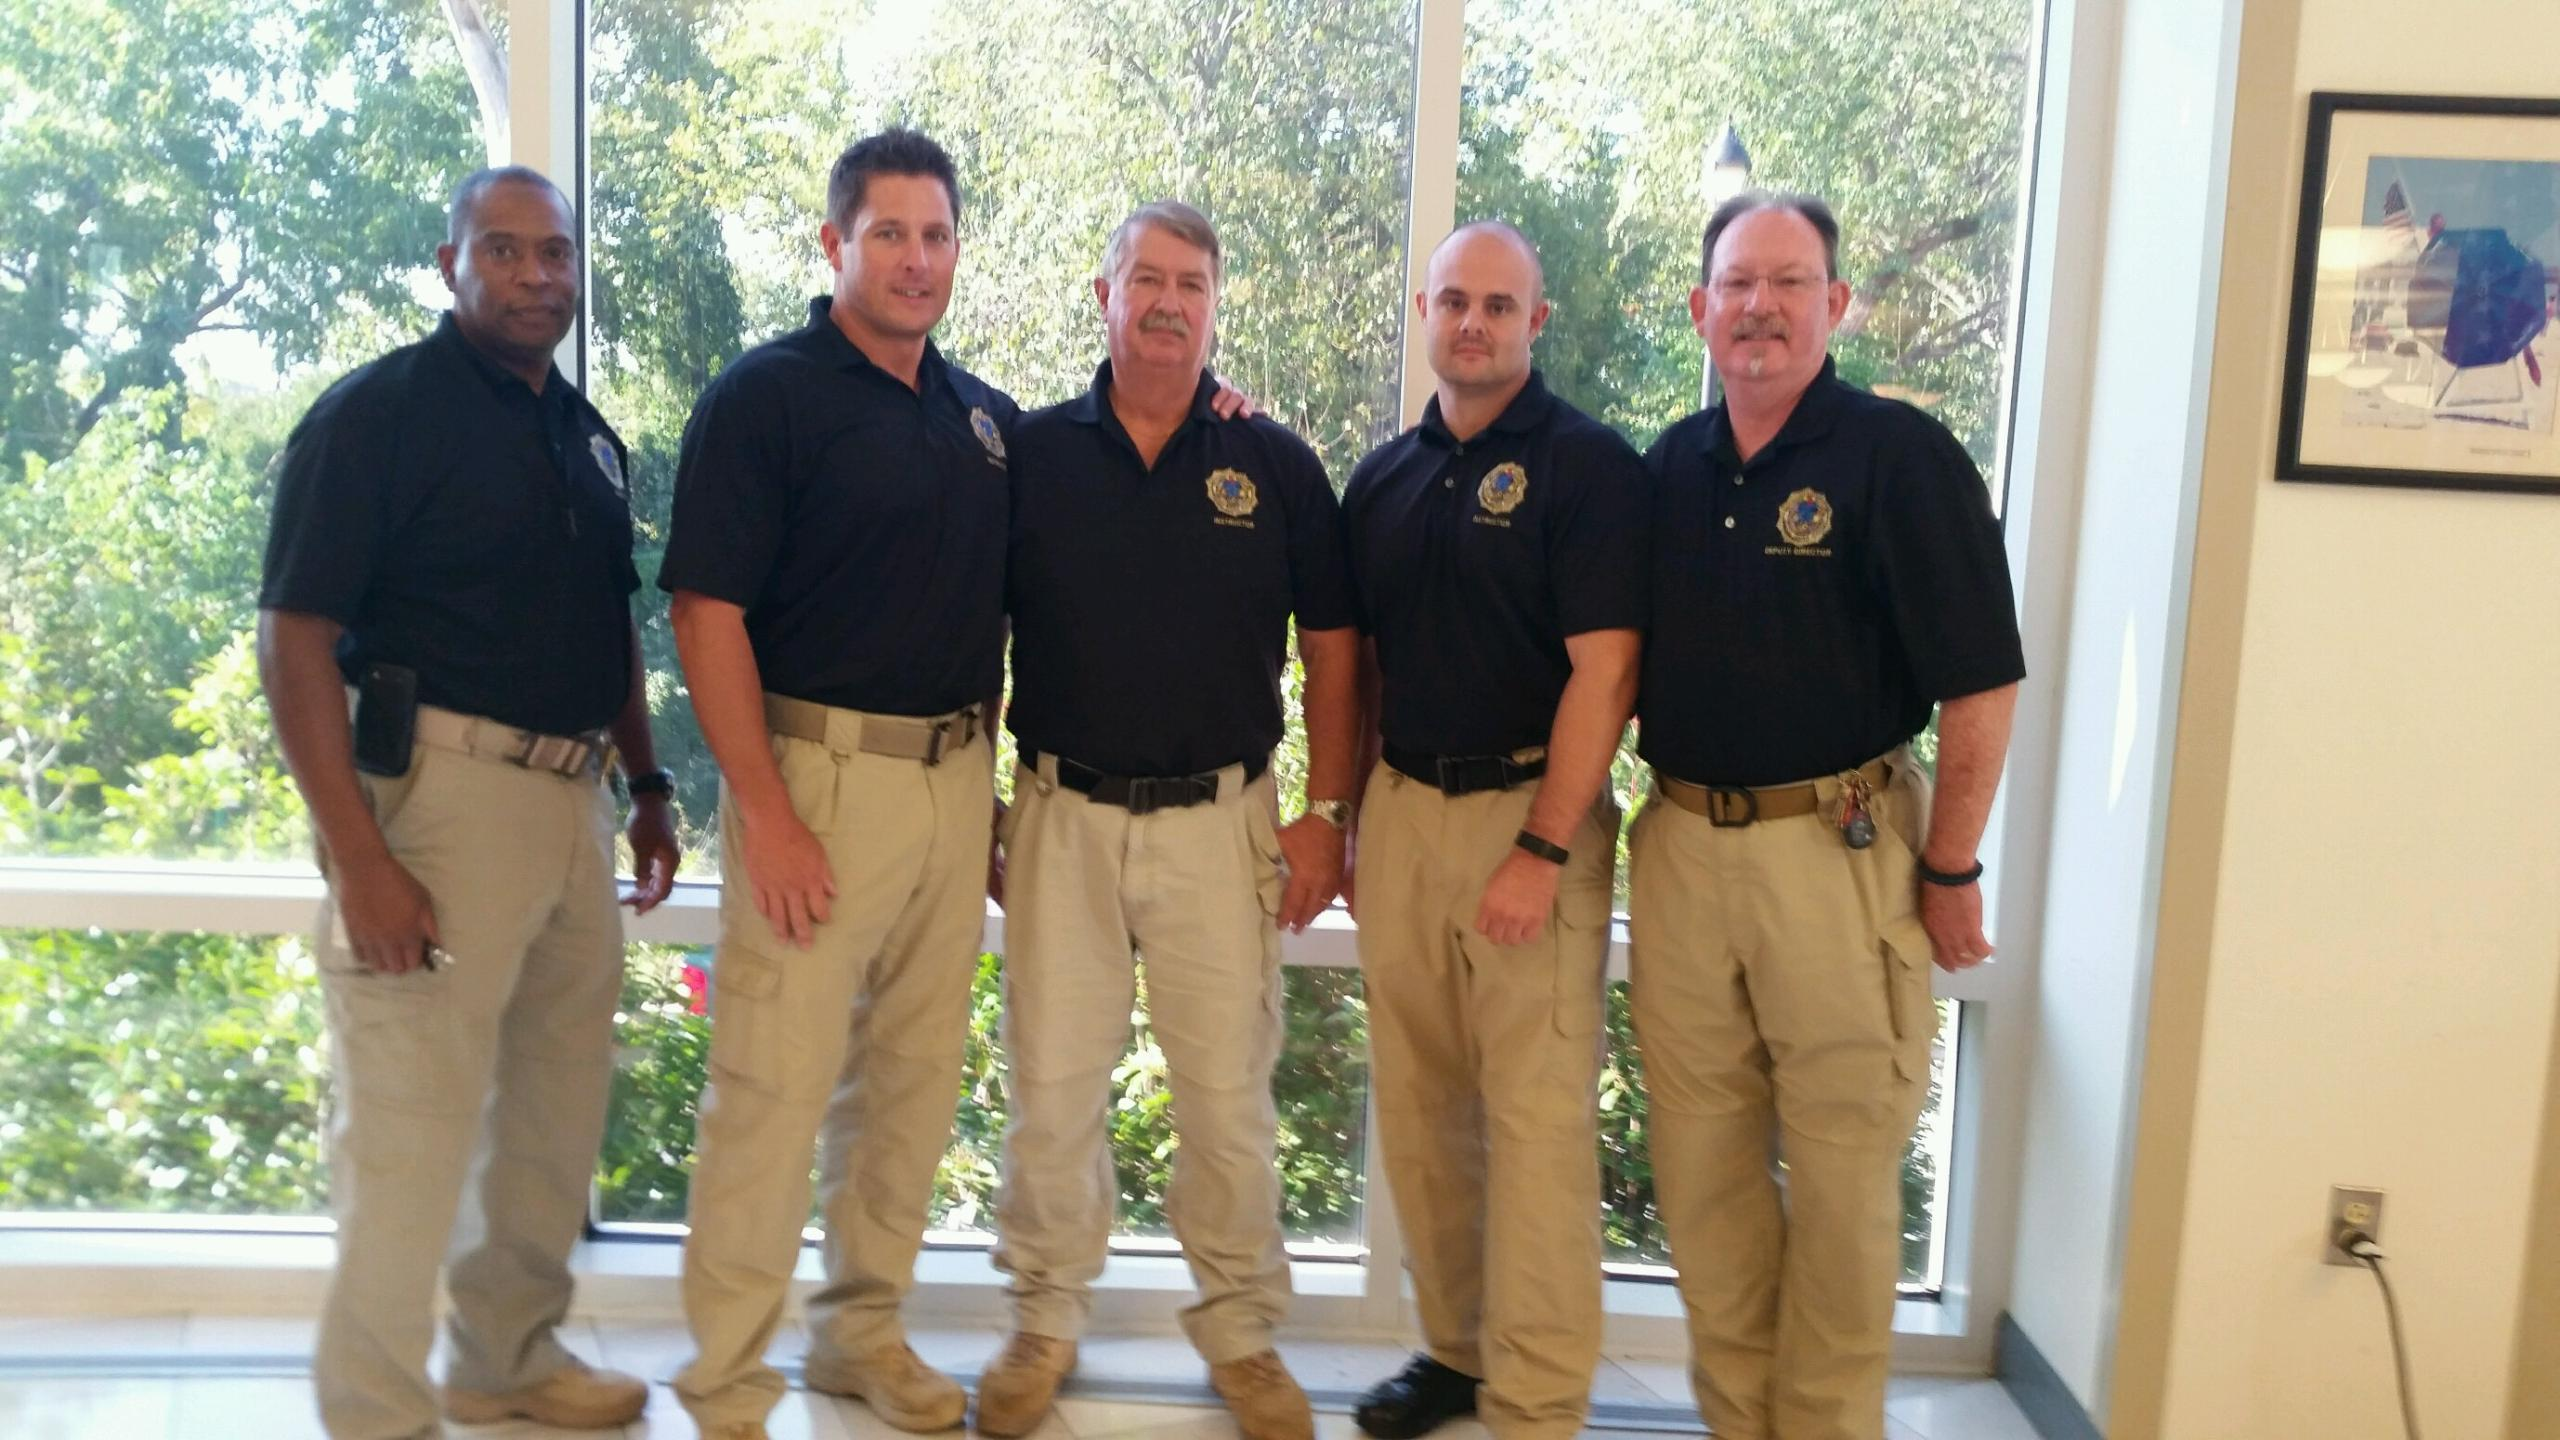 SMCJA Director Keith Hicks with Instructors Jeremy Hebb, Bill Siko, John Hotchkiss and Joseph Young